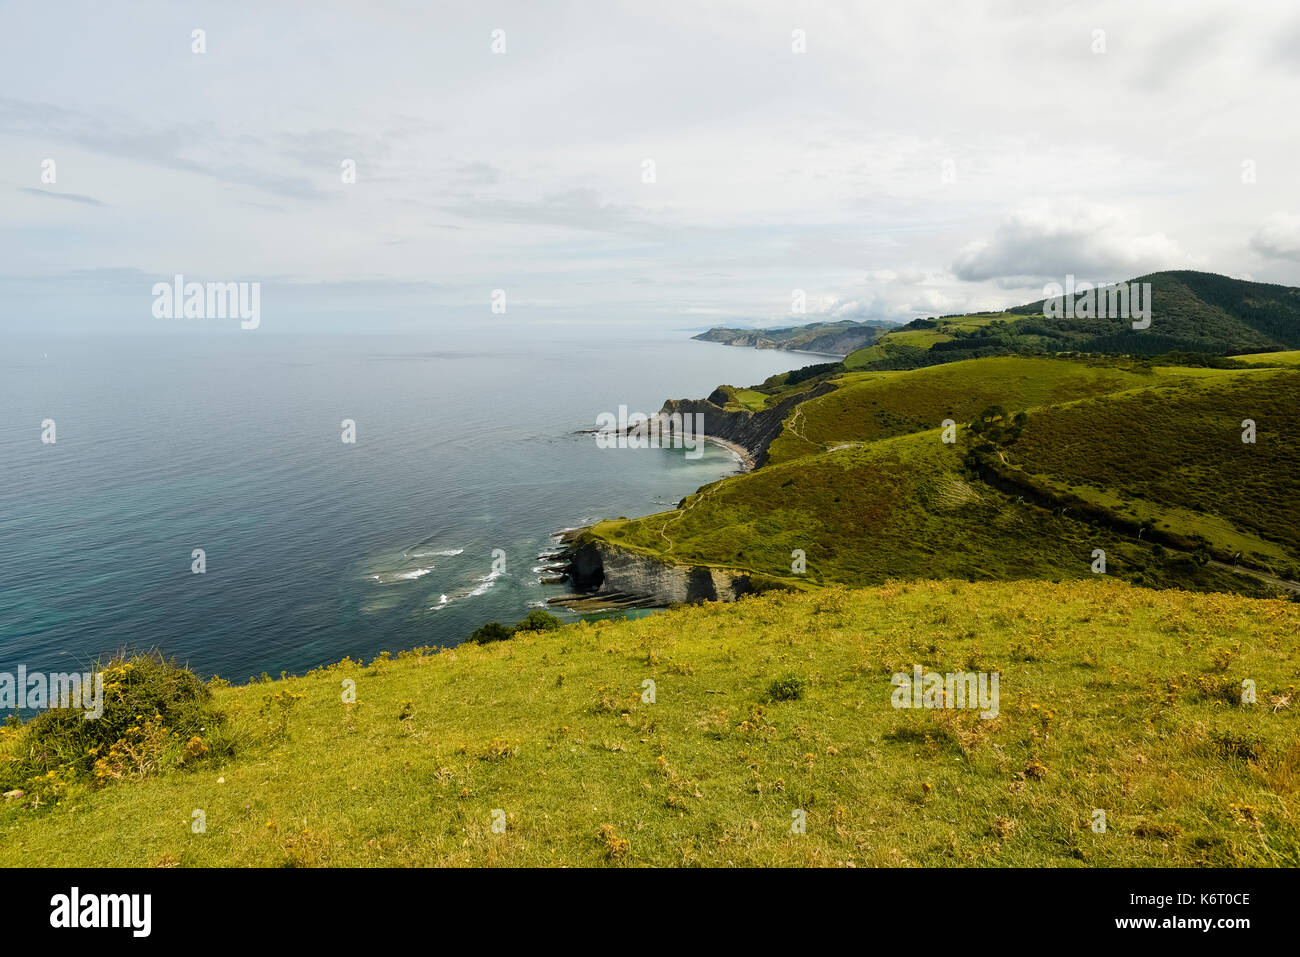 Landscape of the coast of the Basque Country and France in the North of Spain. Photo: Eduardo Manzana - Stock Image